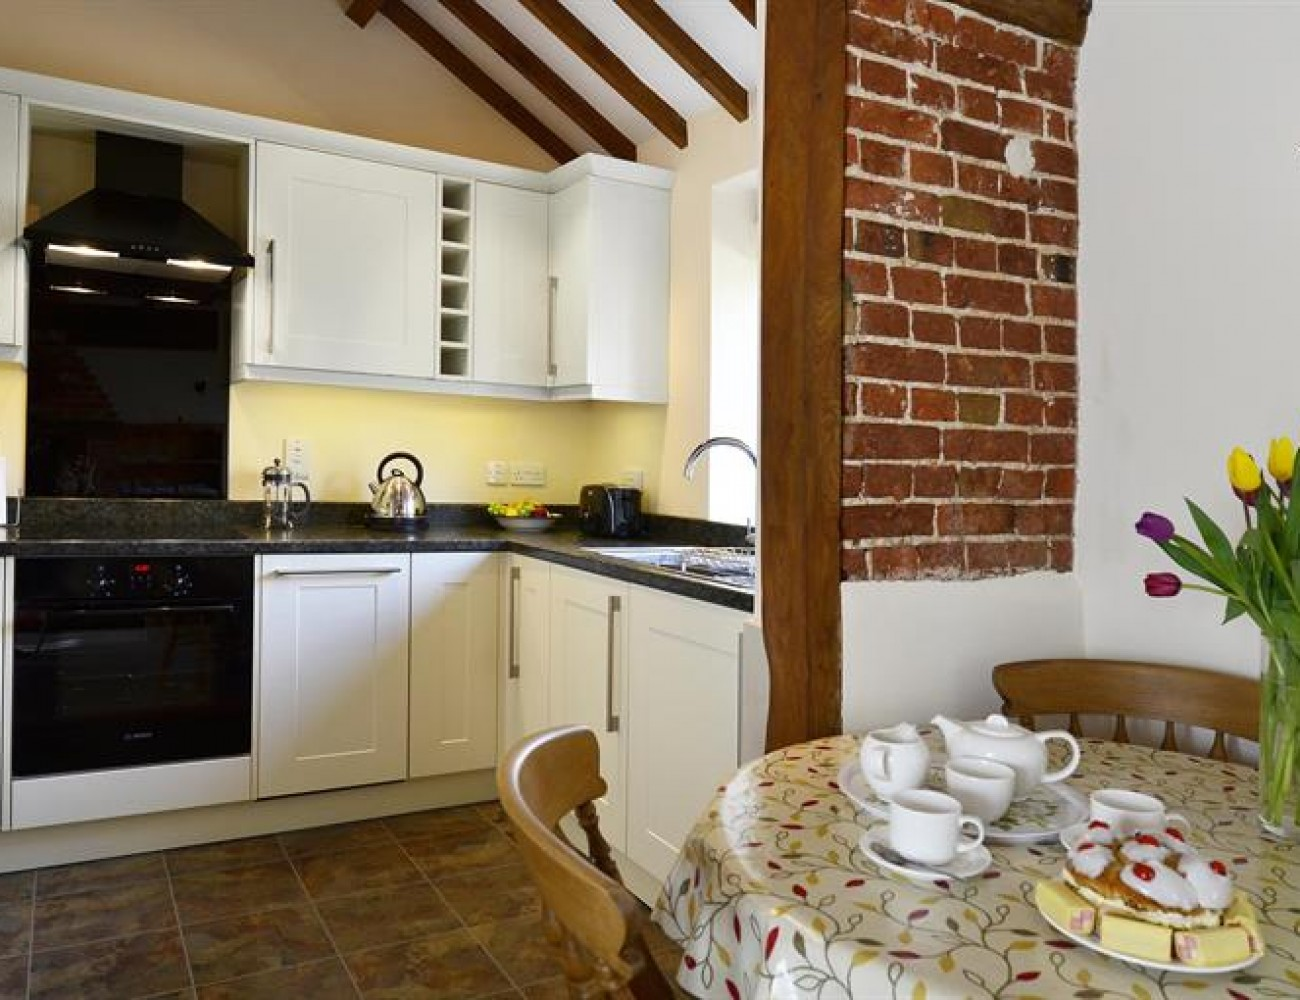 East Norwich Country Kitchen Nutmeg Cottage At East View Farm Luxury Holiday Cottages Unique